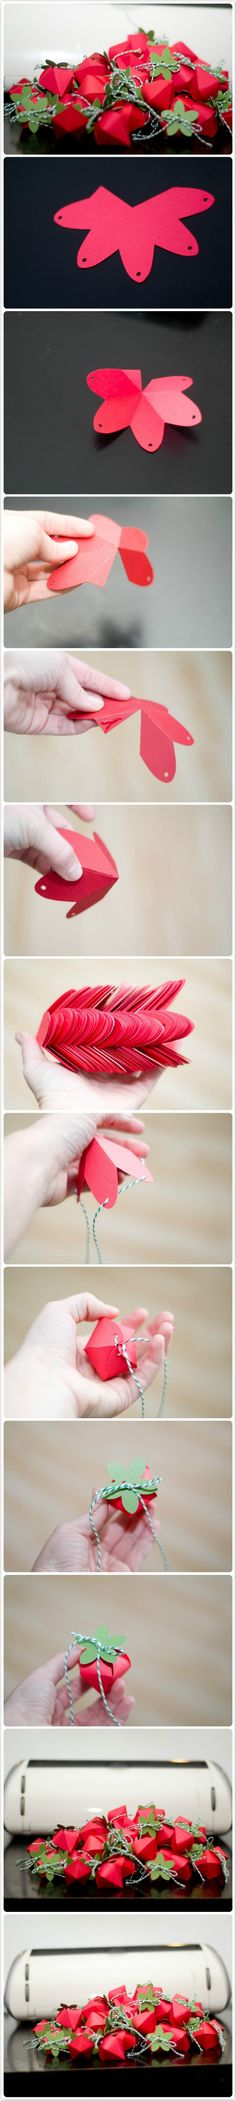 Diy Paper Crafts Origami For Kids 33 Ideas Cute Crafts, Diy And Crafts, Crafts For Kids, Arts And Crafts, Origami Paper, Diy Paper, Diy Origami, Strawberry Box, Strawberry Crafts